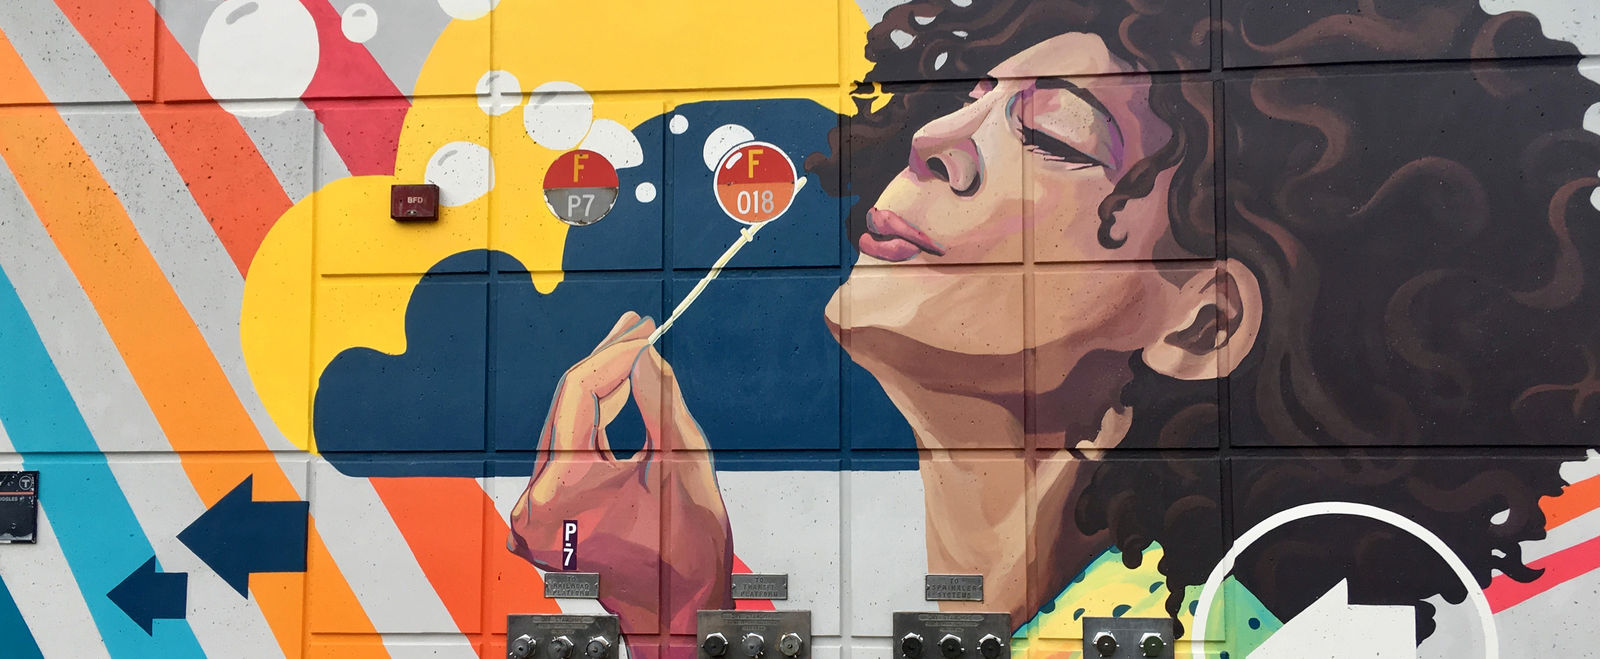 Colorful mural of woman with brown hair and red lipstick blowing white bubbles across a rainbow.